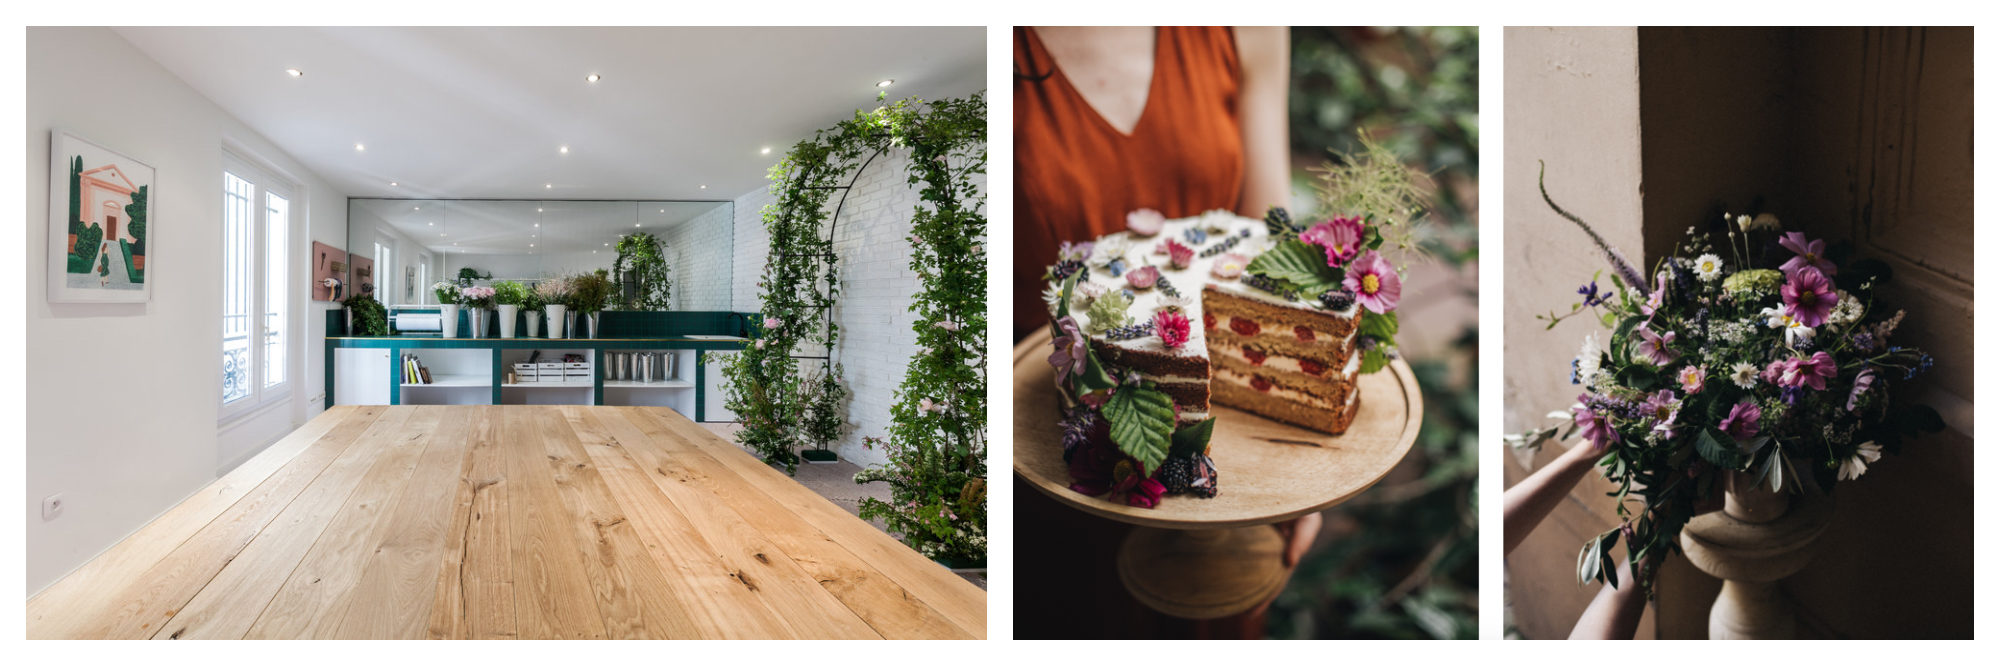 Alternative co-working spaces in Paris include Peonies coffee shop for its soothing flowery decor (left) and flower creations (right).